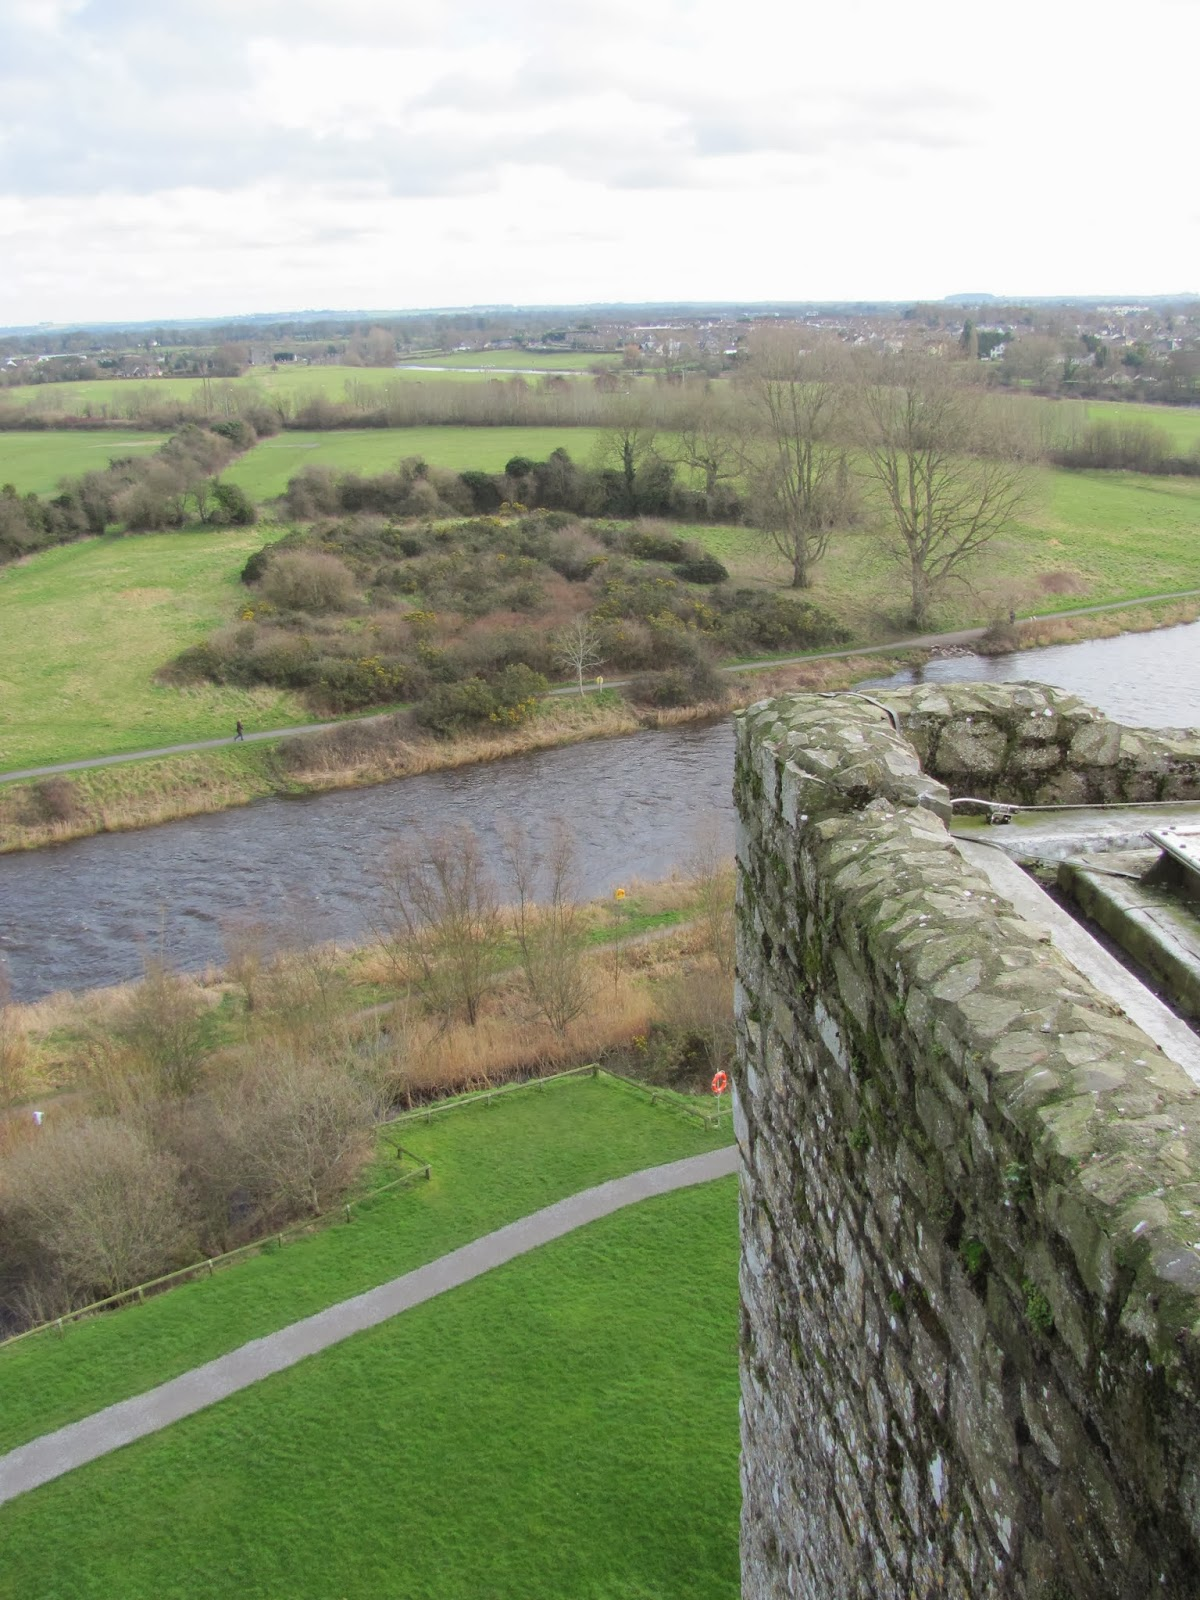 River Boyne seen from the ramparts of Trim Castle, Trim, Ireland